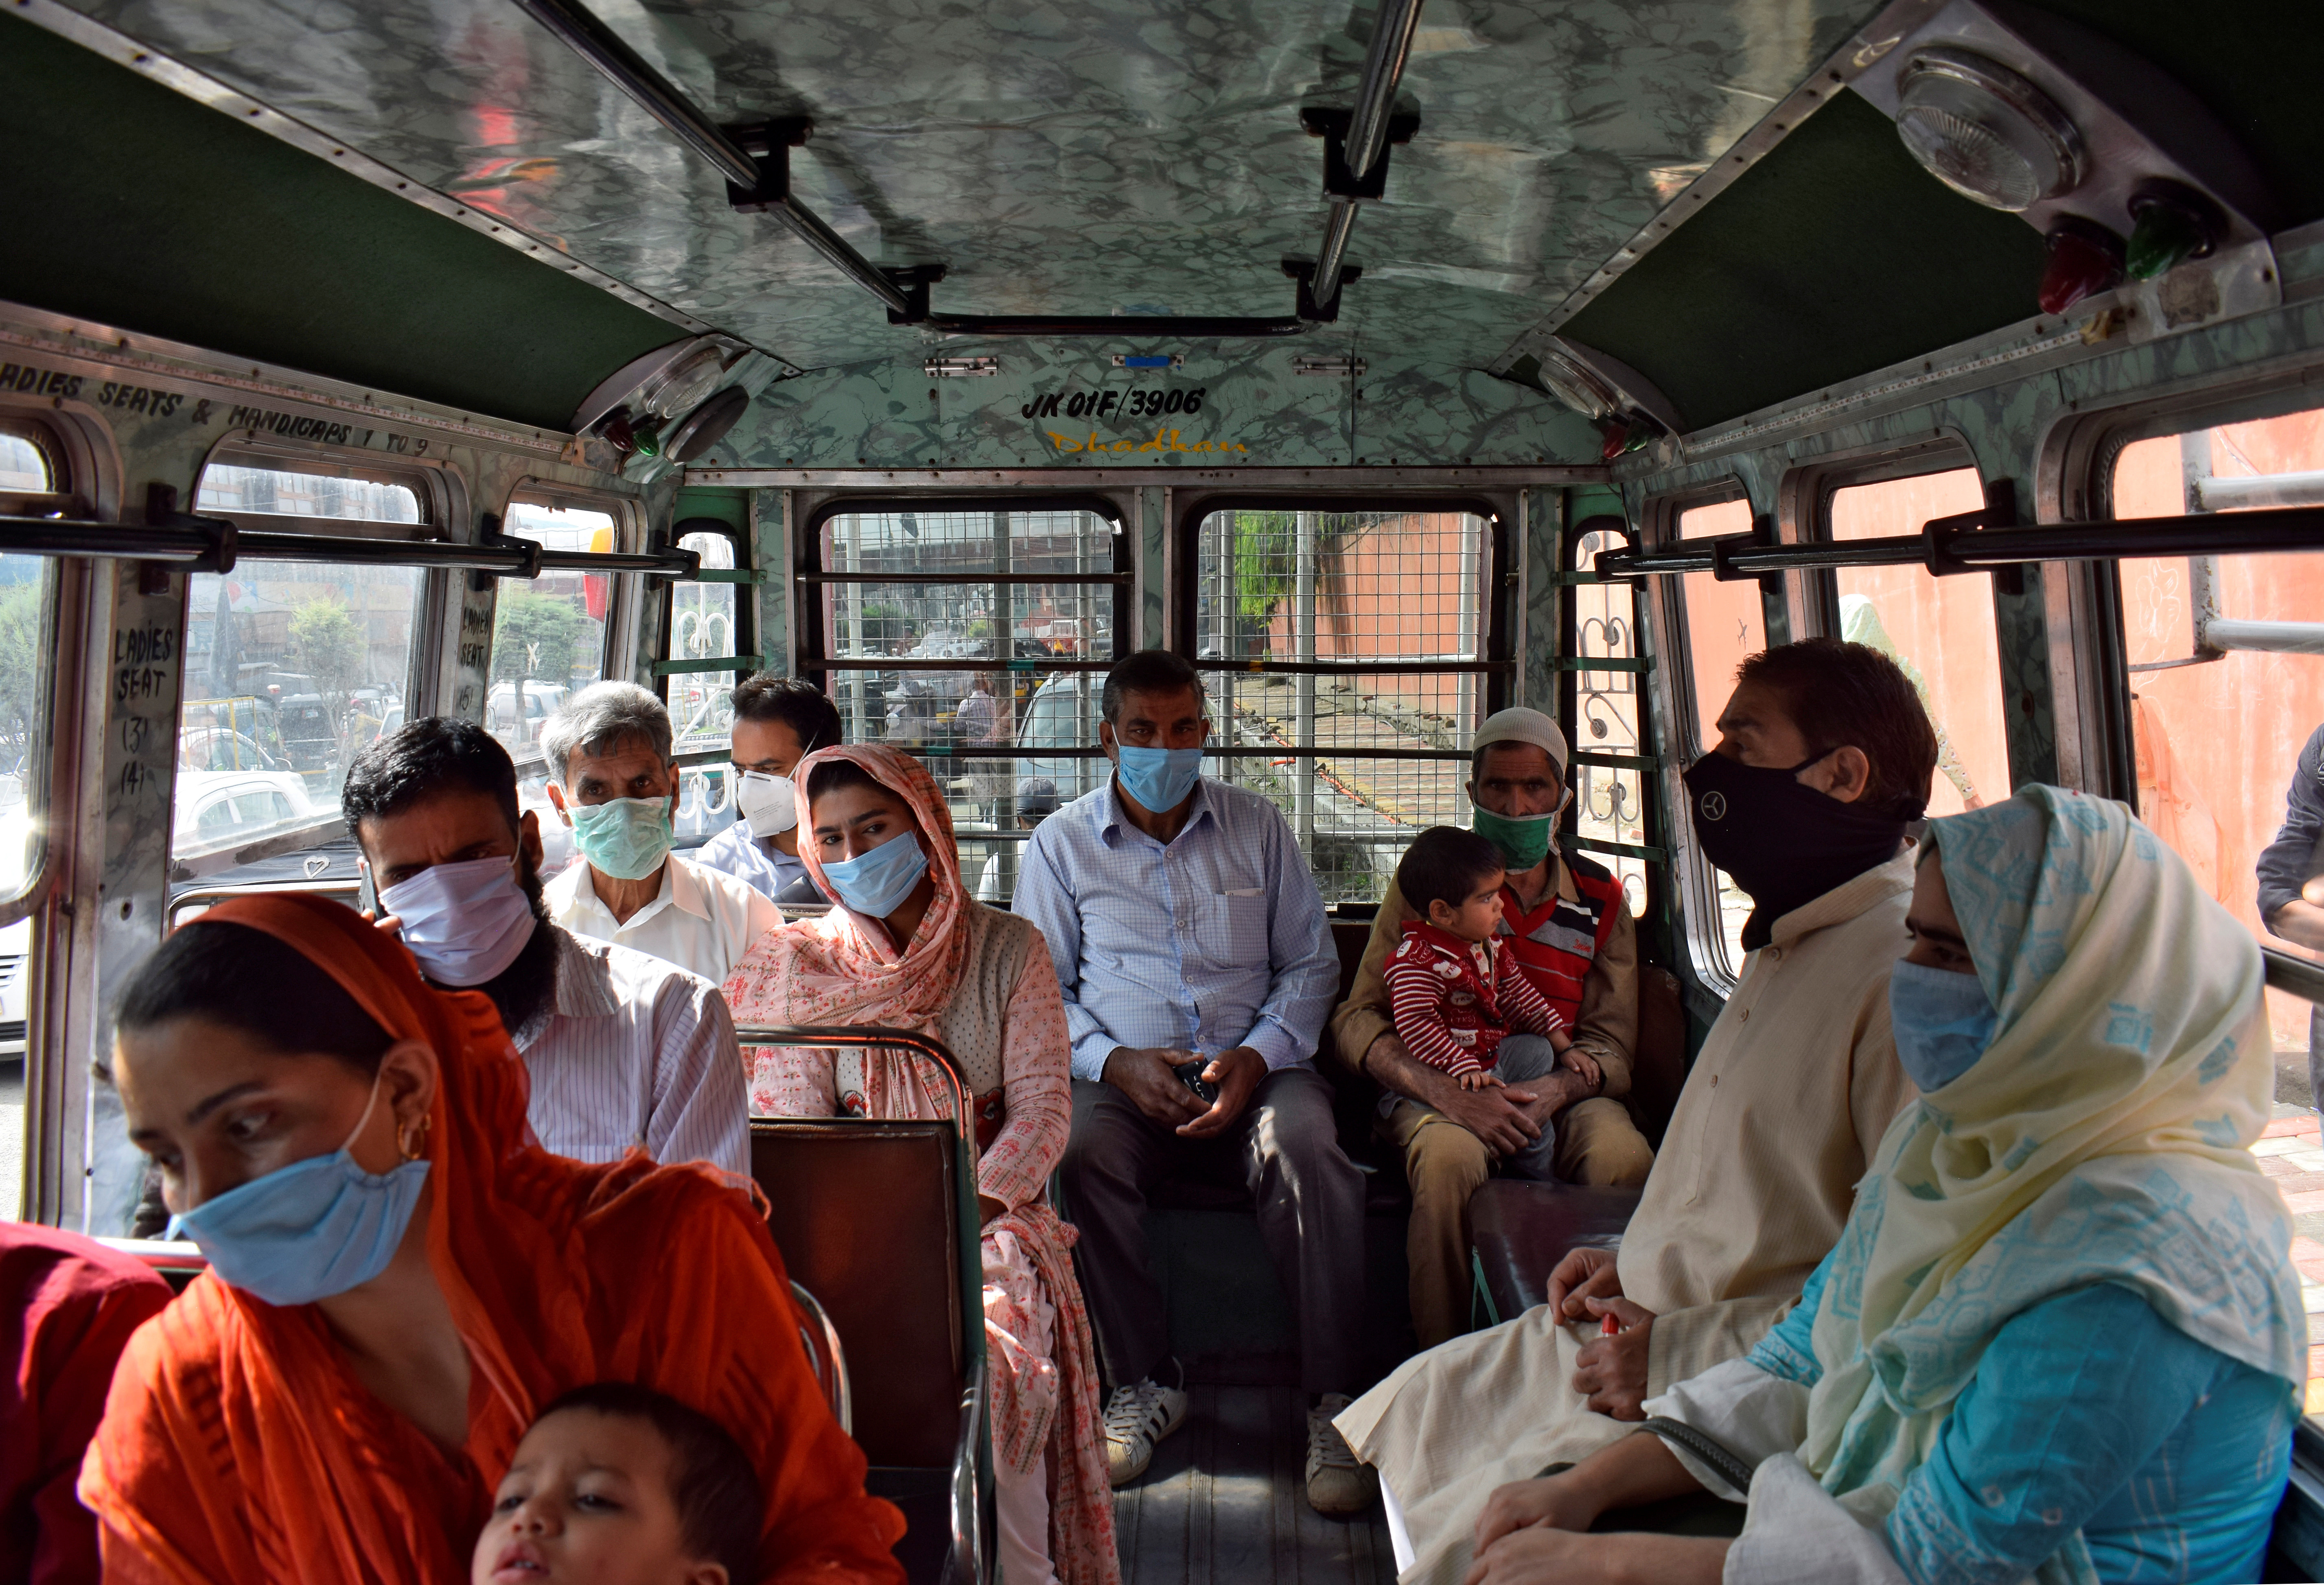 People wearing protective face masks travel in a passenger vehicle amidst the coronavirus disease (COVID-19) outbreak in Srinagar, September 7, 2020. REUTERS/Sanna Irshad Mattoo - RC2LTI9YFPH6